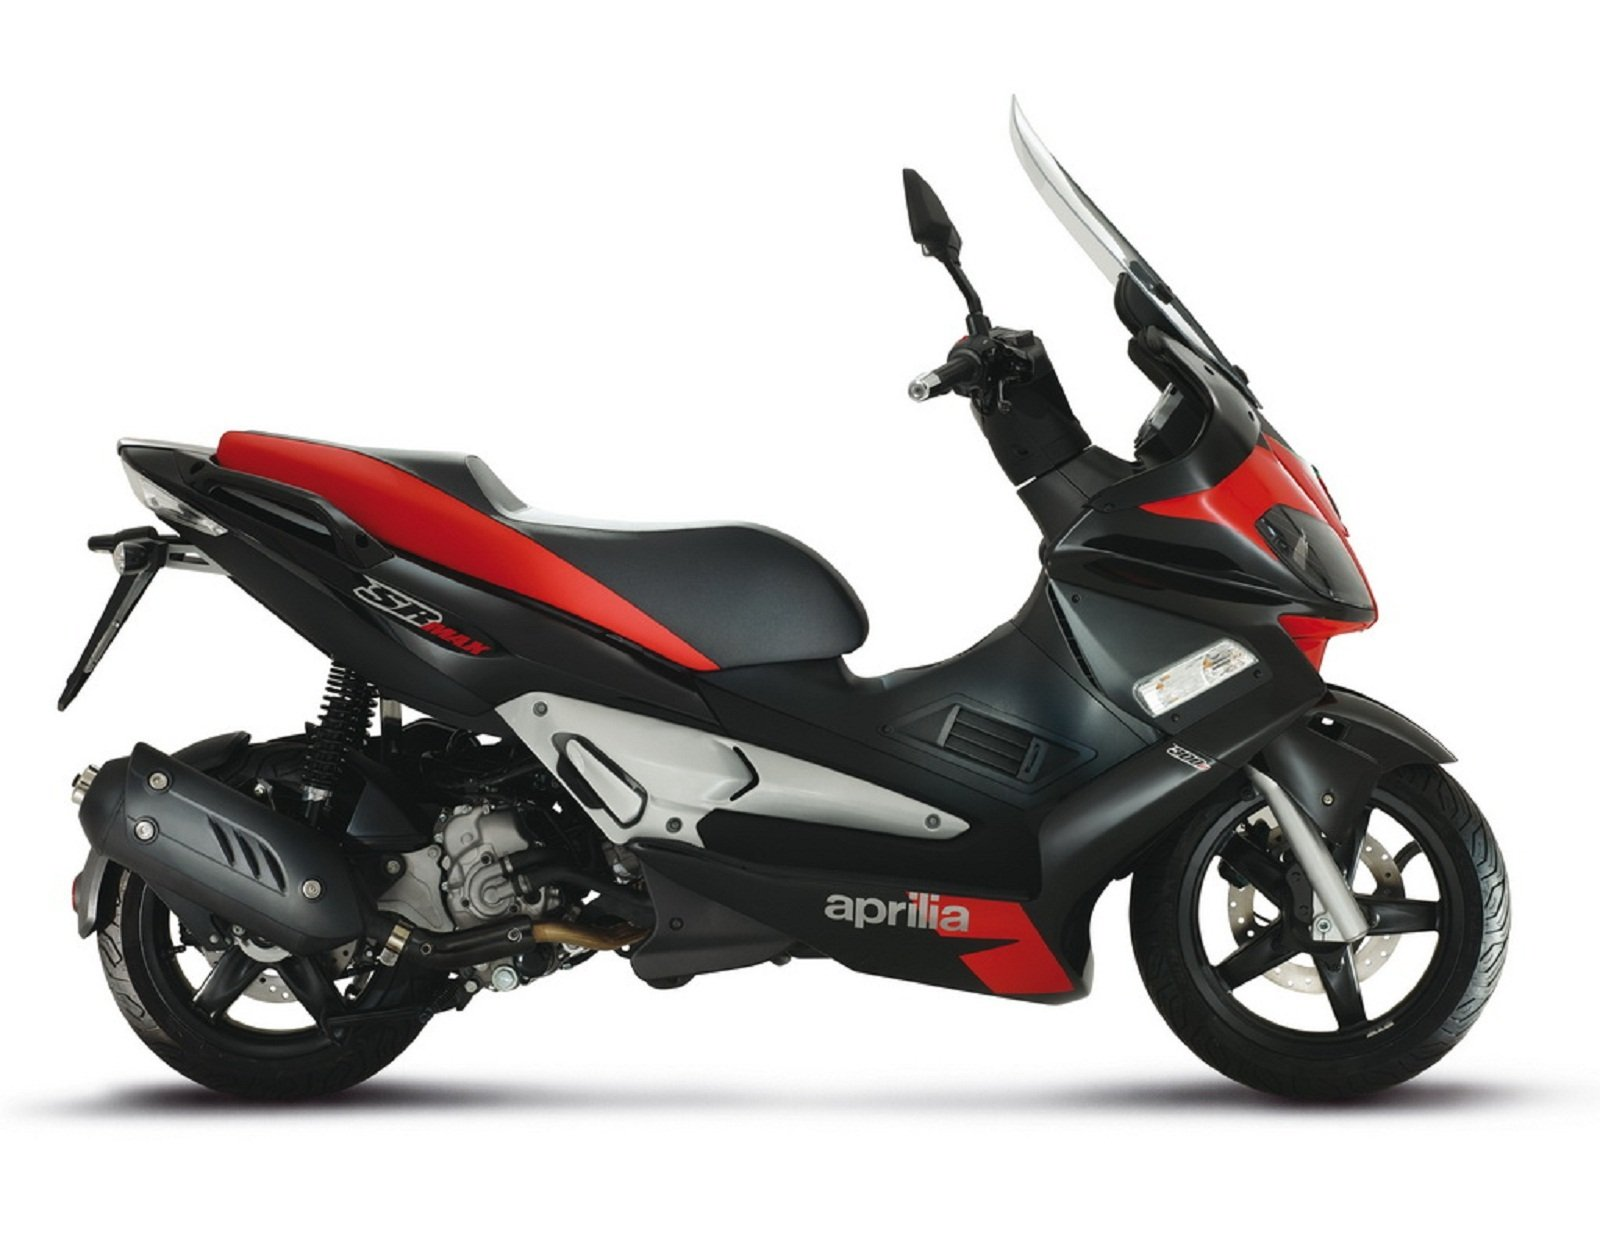 2012 aprilia sr max 300 picture 439360 motorcycle. Black Bedroom Furniture Sets. Home Design Ideas